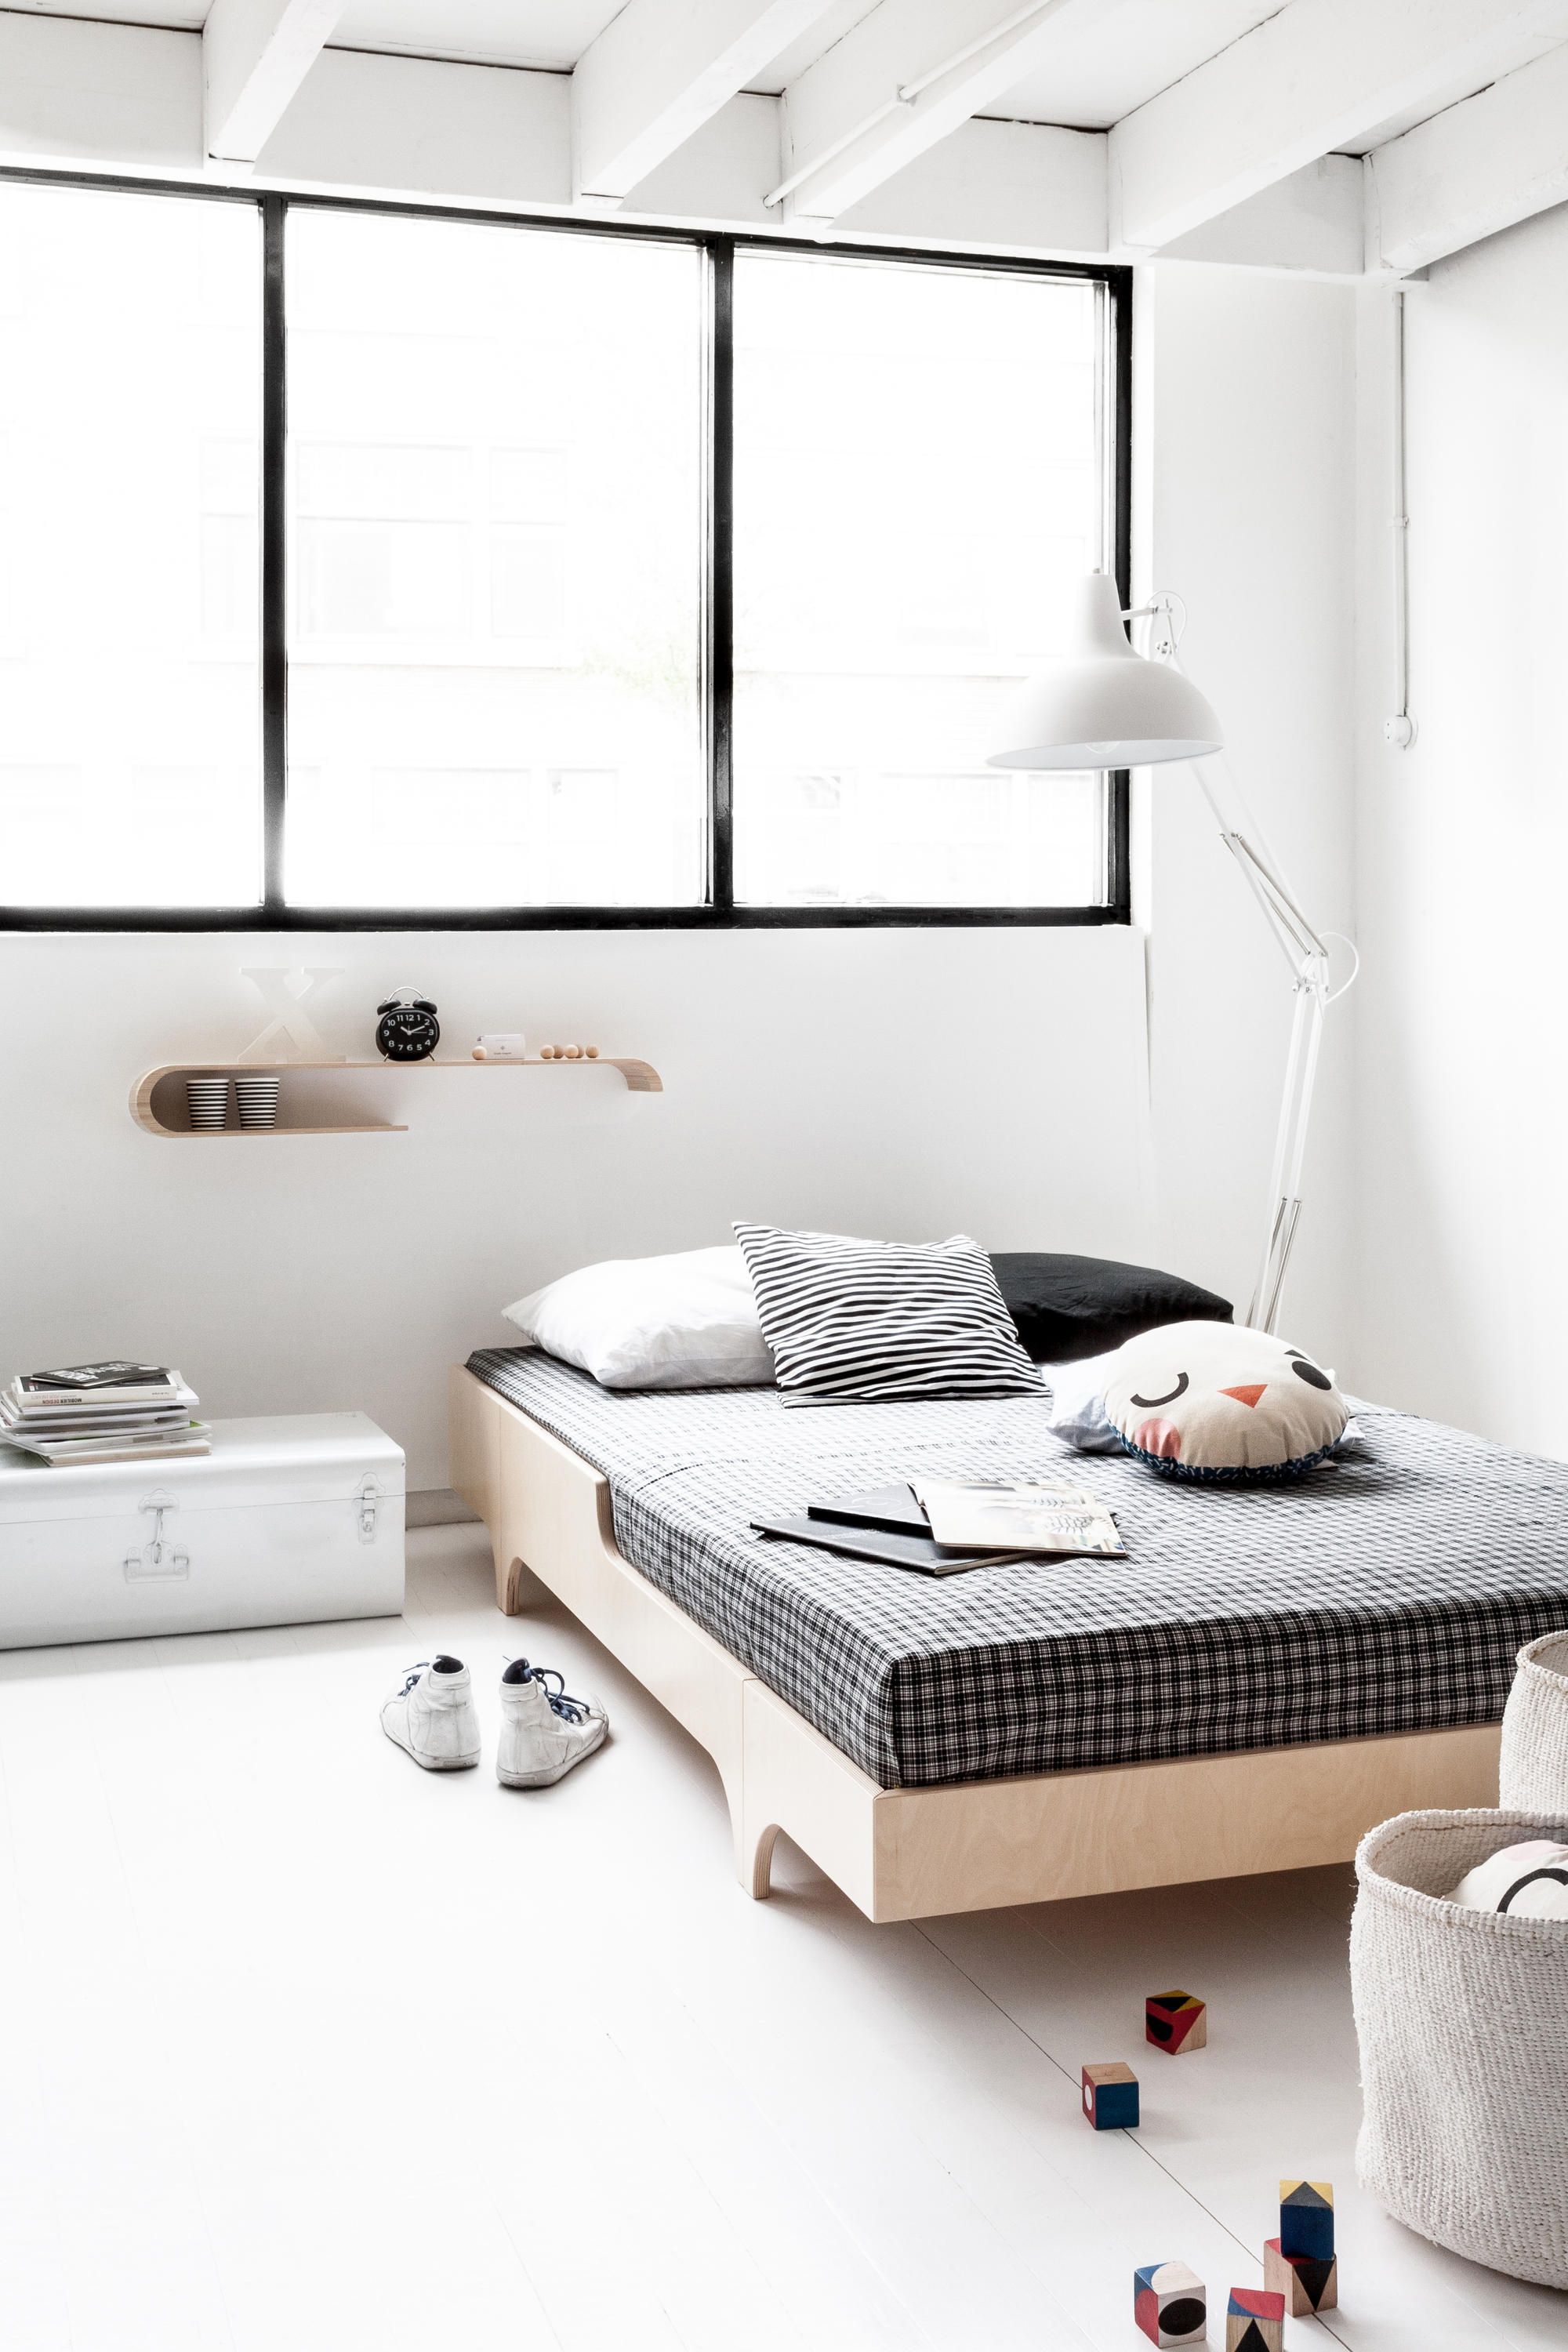 Tienerbed Incl Matras.A Teen Bed Incl Mattress Natural Kids Beds From Rafa Kids